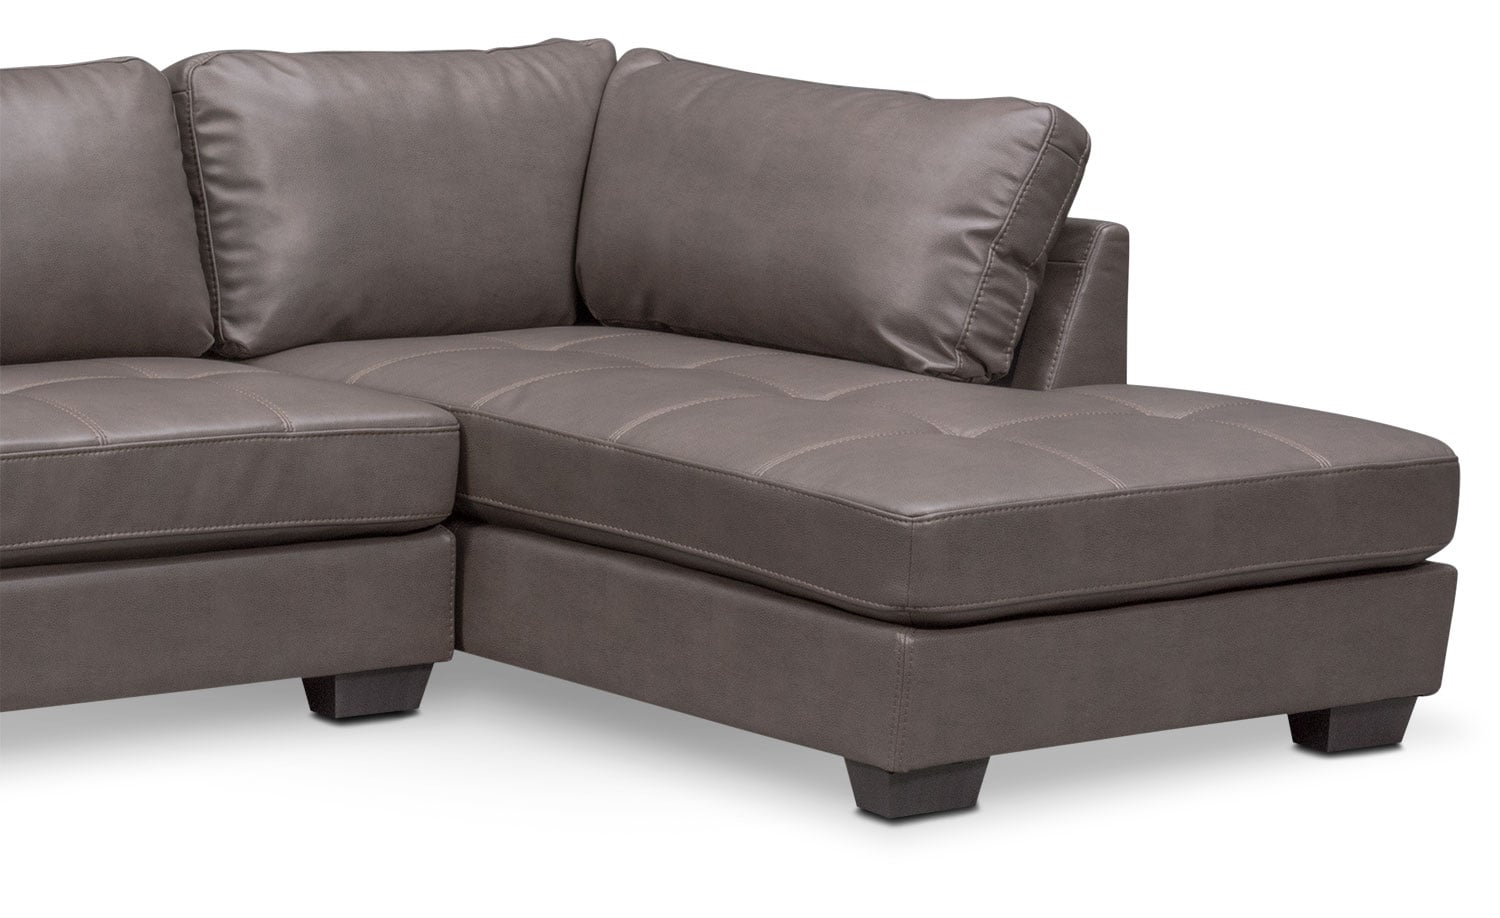 Santana 2 piece sectional with right facing chaise gray for 2 piece sectionals with chaise